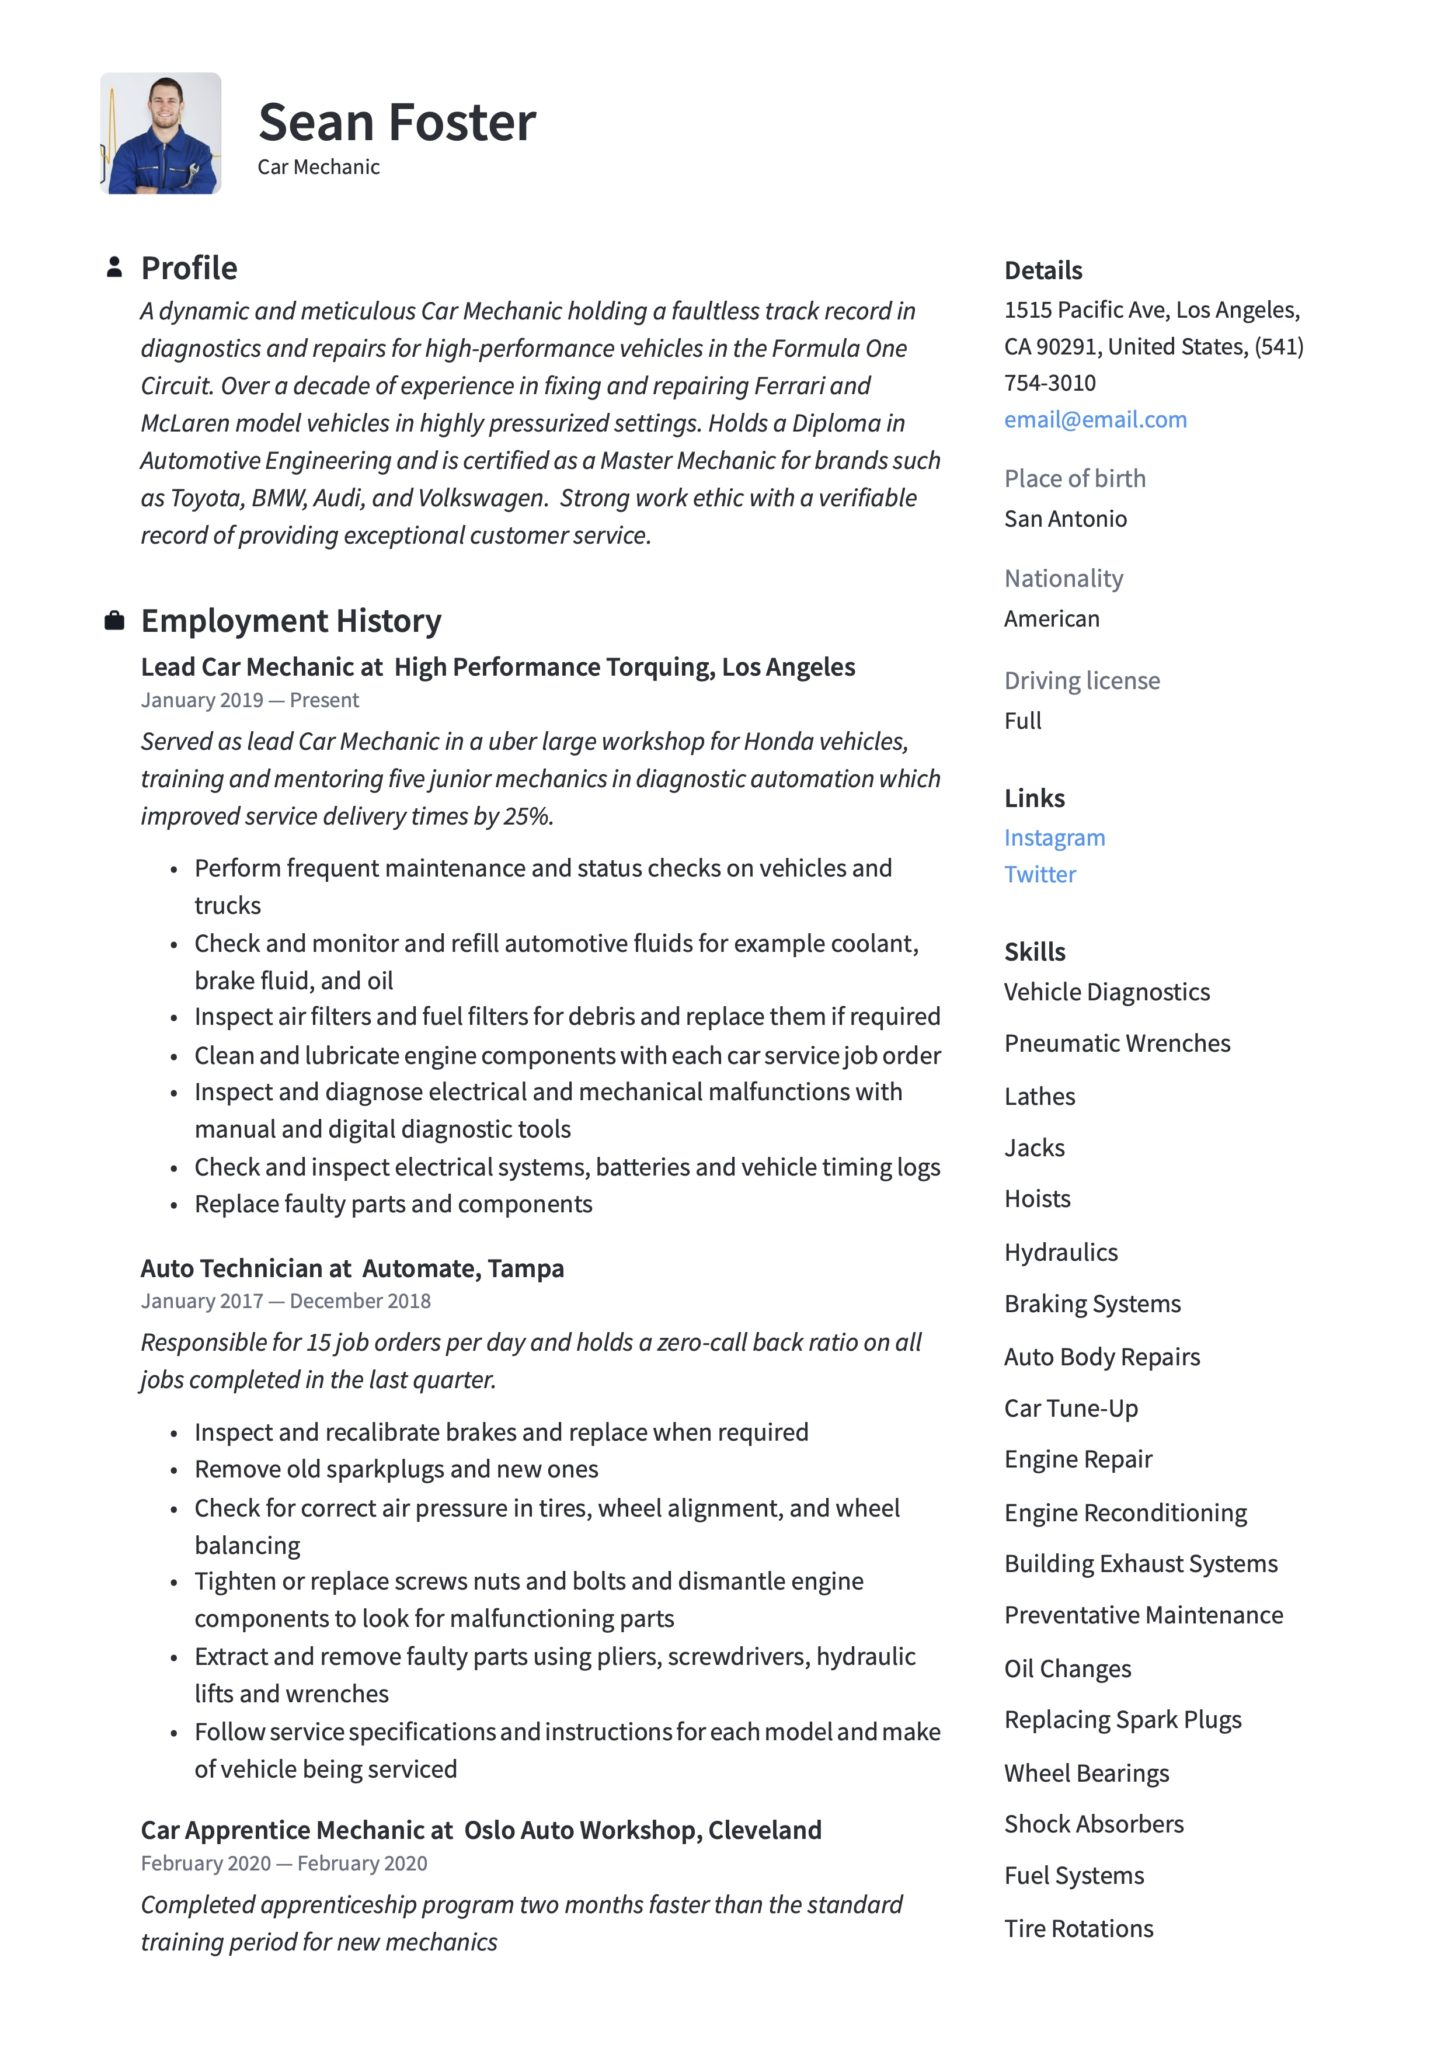 car mechanic resume guide examples automotive technician scaled yoga teacher indeed Resume Automotive Technician Resume Examples